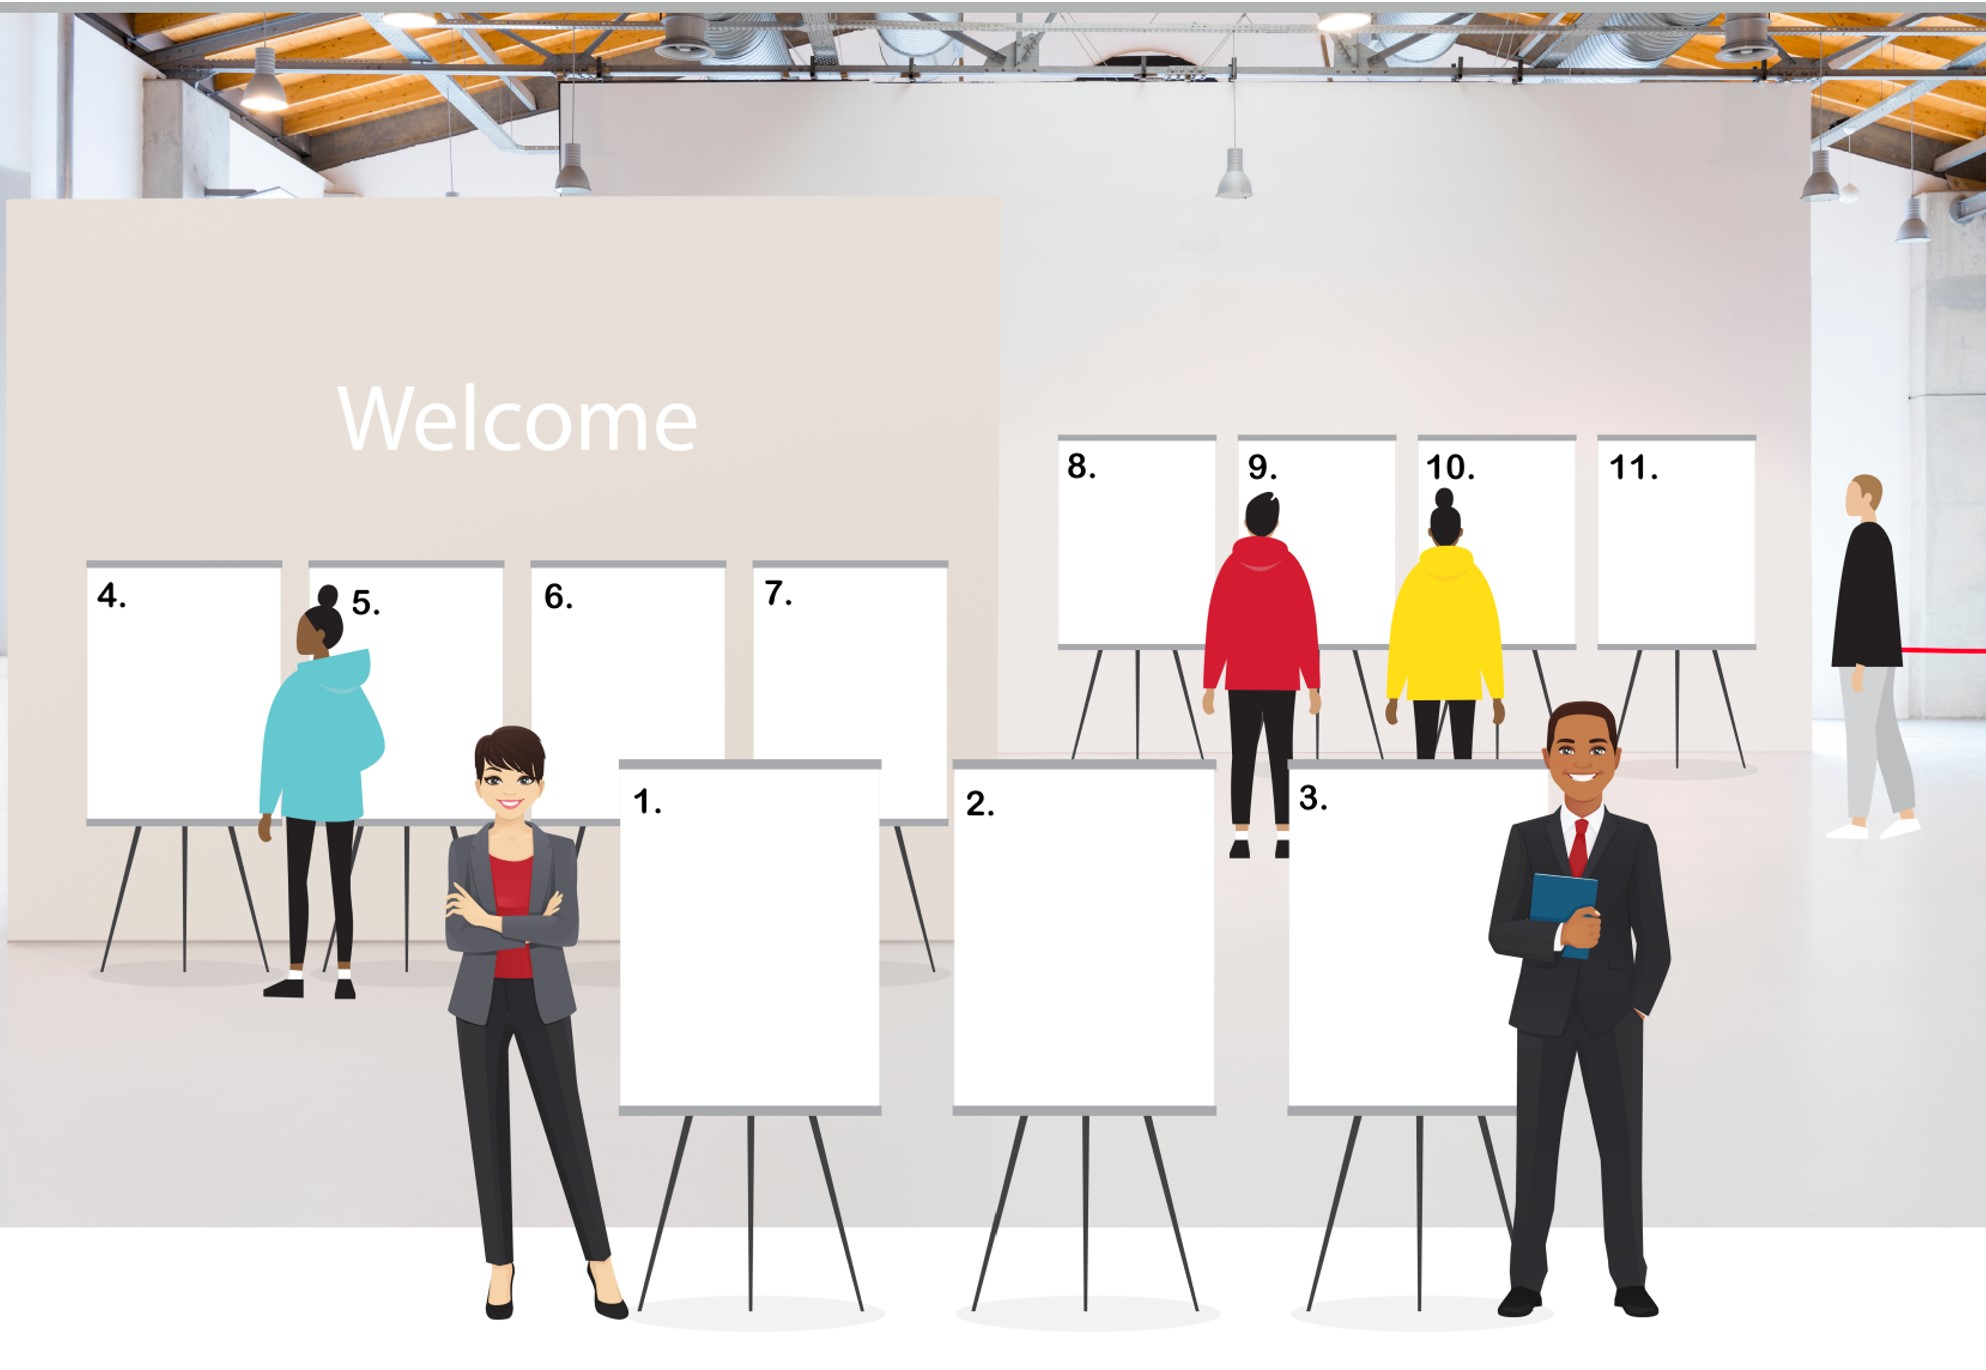 Image shows a graphic of a virtual open house i.e. a room with informational boards laid out. Each room can be clicked on for more information.